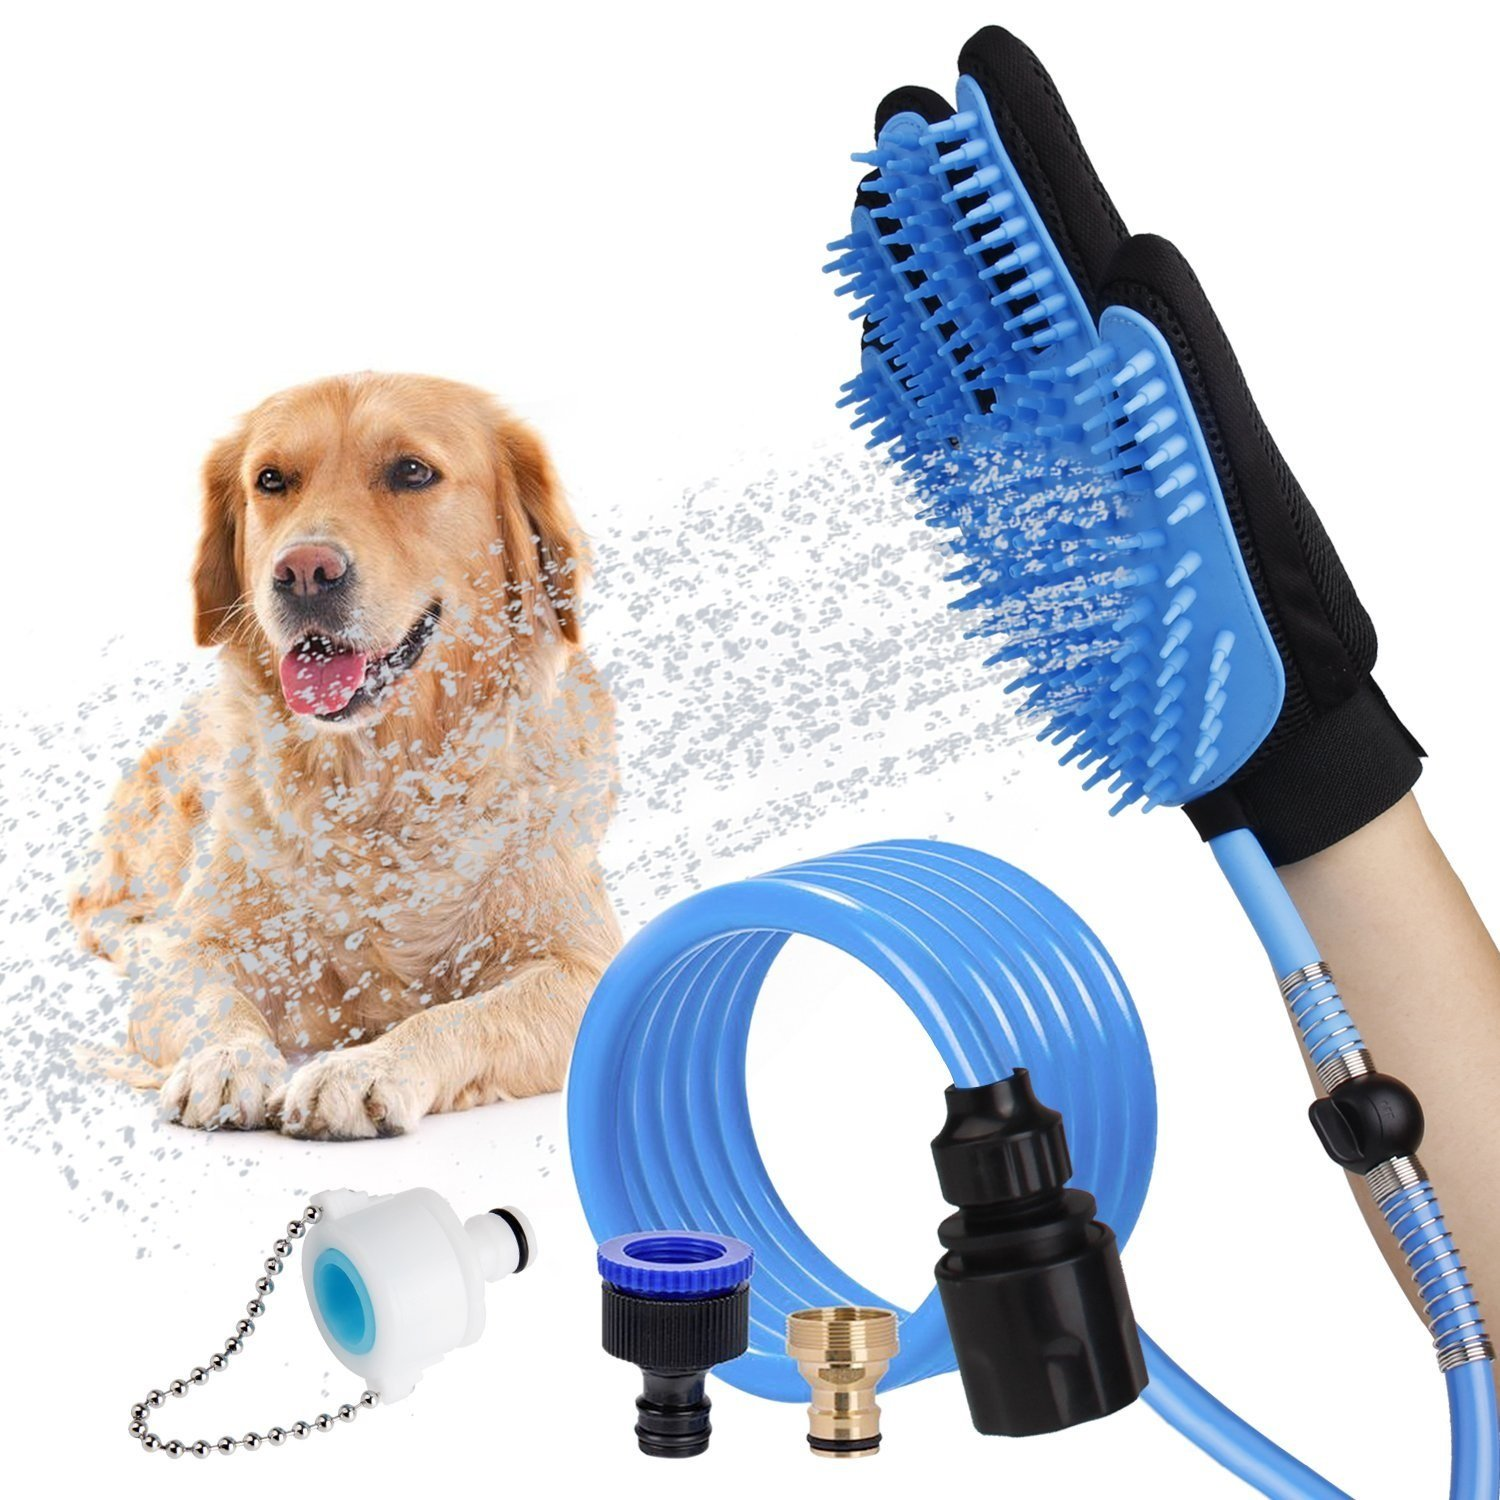 UTTORA 2018 New Pet Bathing Glove Tool - Pet Shower Sprayer Wash/Massage Tool for Shower, Bath Tub, or Outdoor Garden Hose Compatible, Dog Cat Grooming Glove